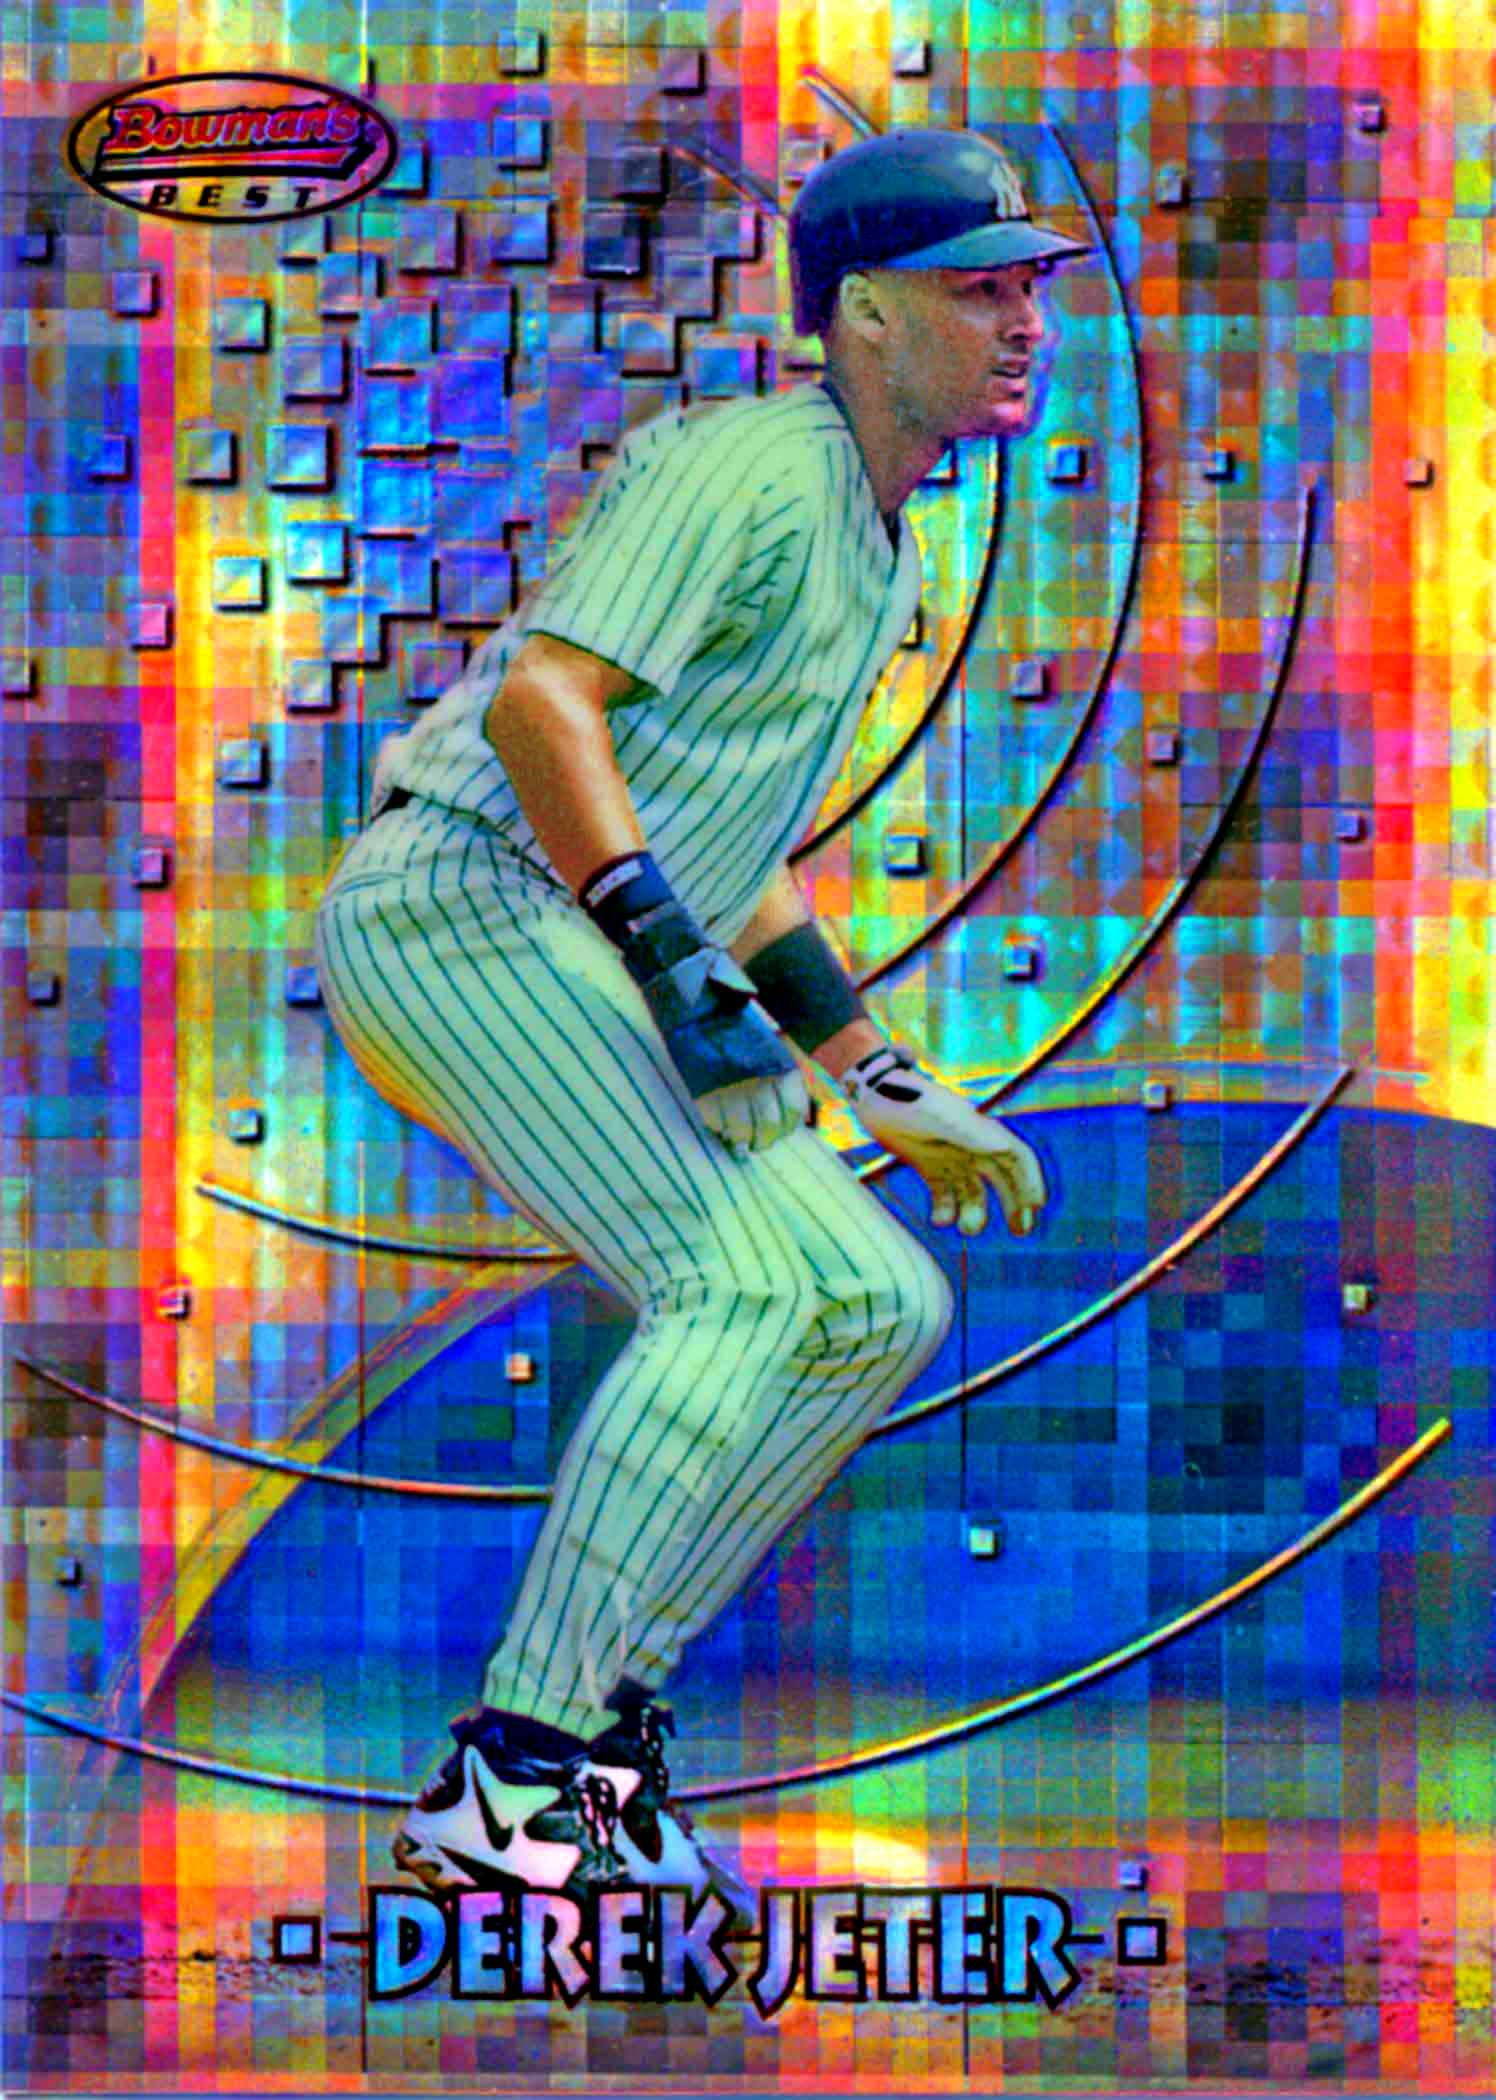 1997 Bowman's Best Preview Atomic Refractor